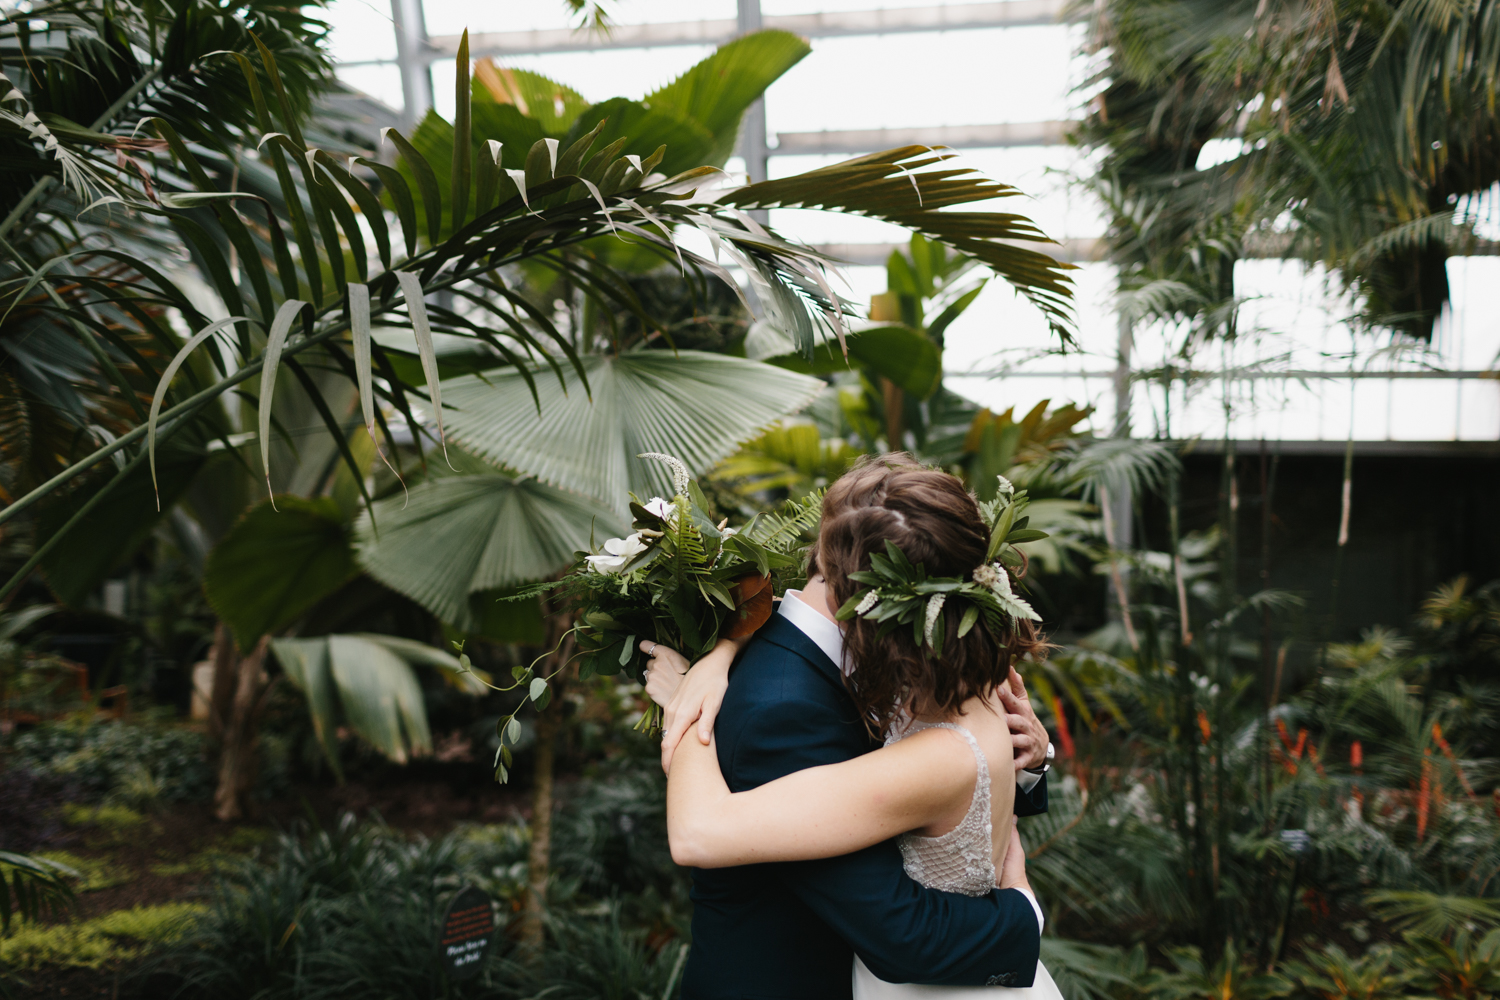 Chicago Garfield Park Conservatory Wedding by Northern Michigan Photographer Mae Stier-038.jpg